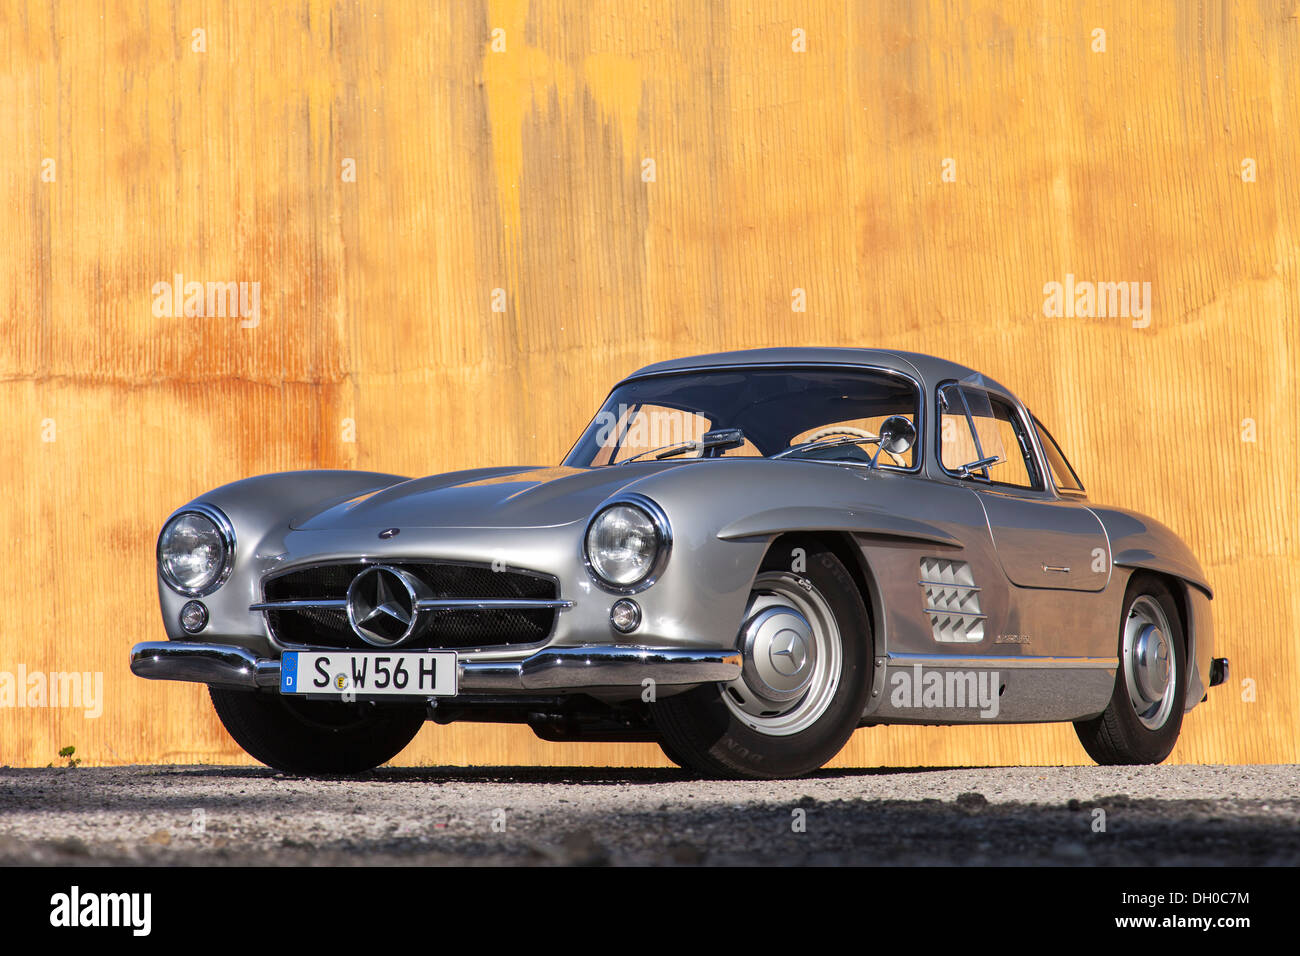 Silver Mercedes 300 SL Coupe W 198 Gullwing 1961 Rare Vintage Sports Car